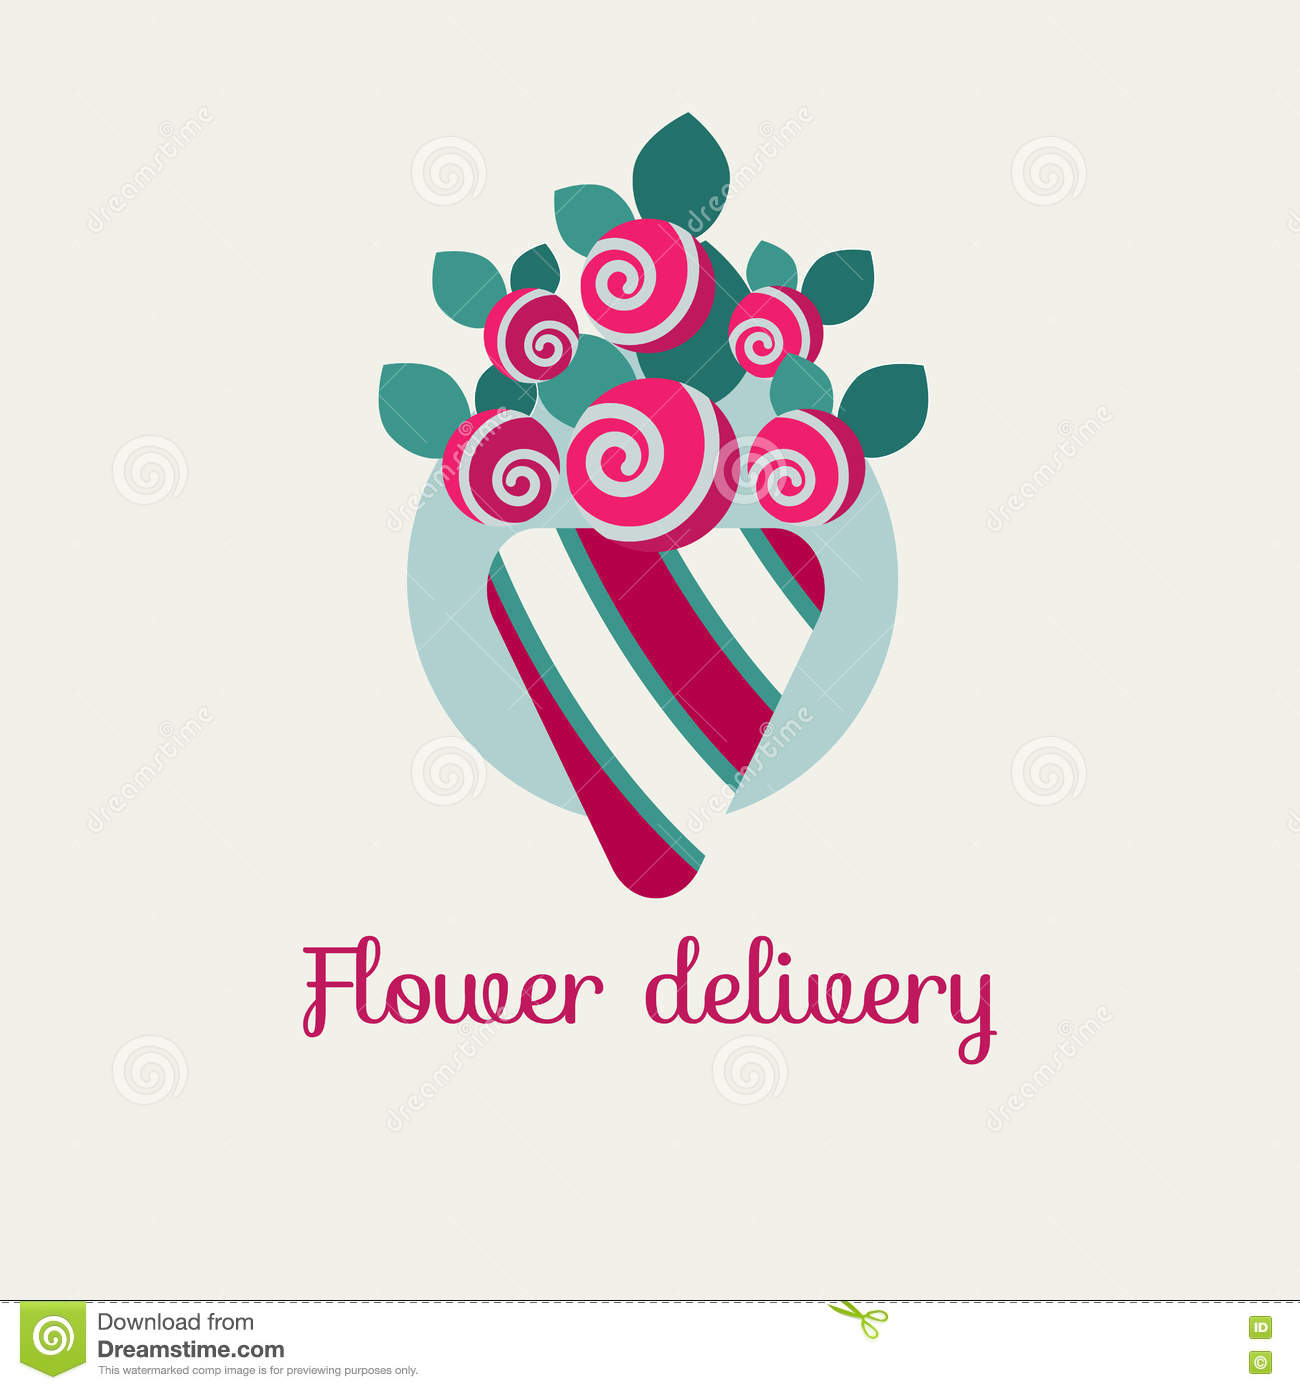 Vector flower delivery stock vector. Illustration of logotype - 81713278